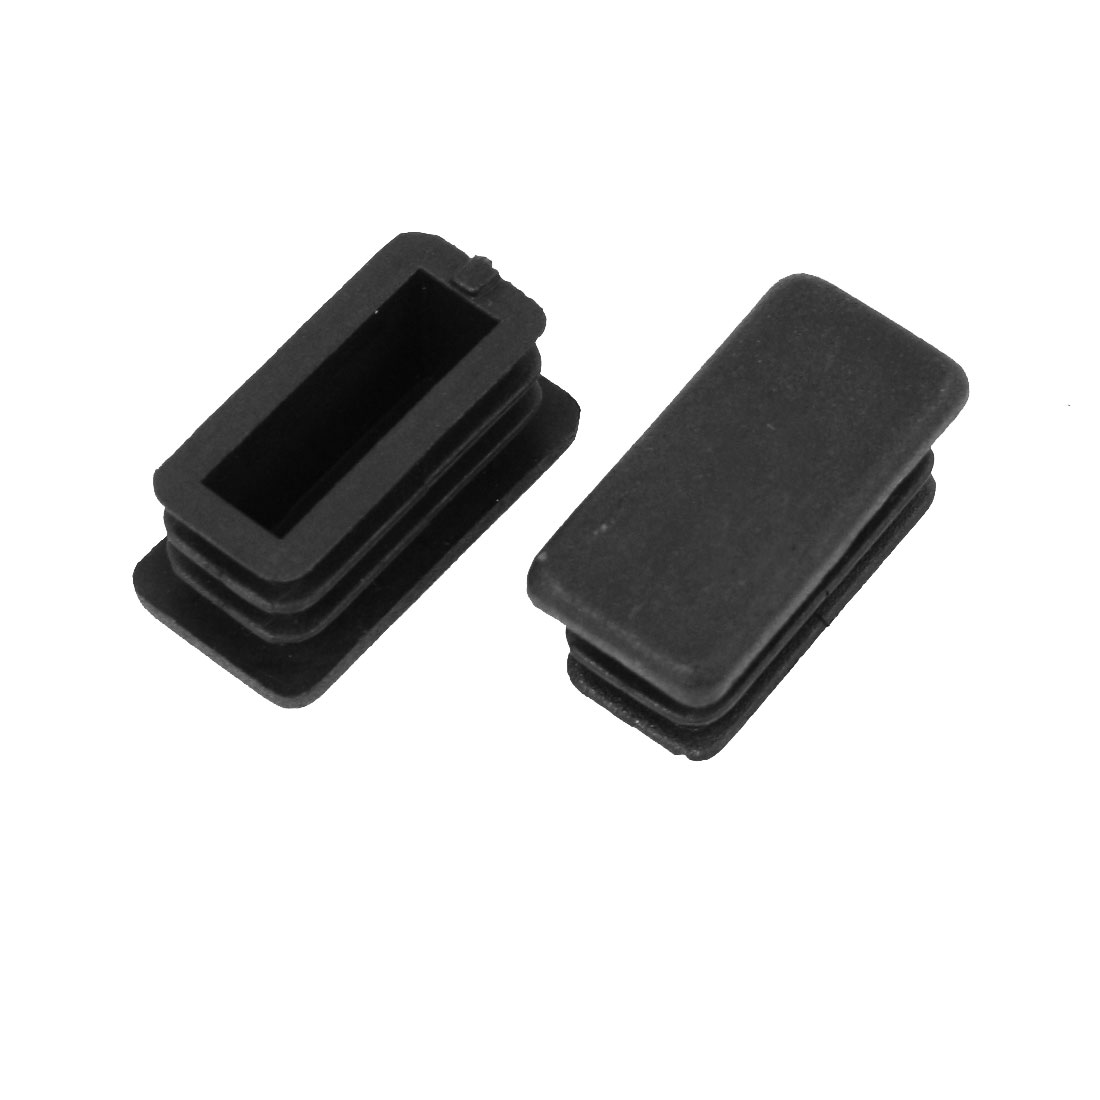 2 Pieces 13mm x 26mm Plastic Blanking End Caps Cover Rectangle Tubing Tube Pipe Insert Black